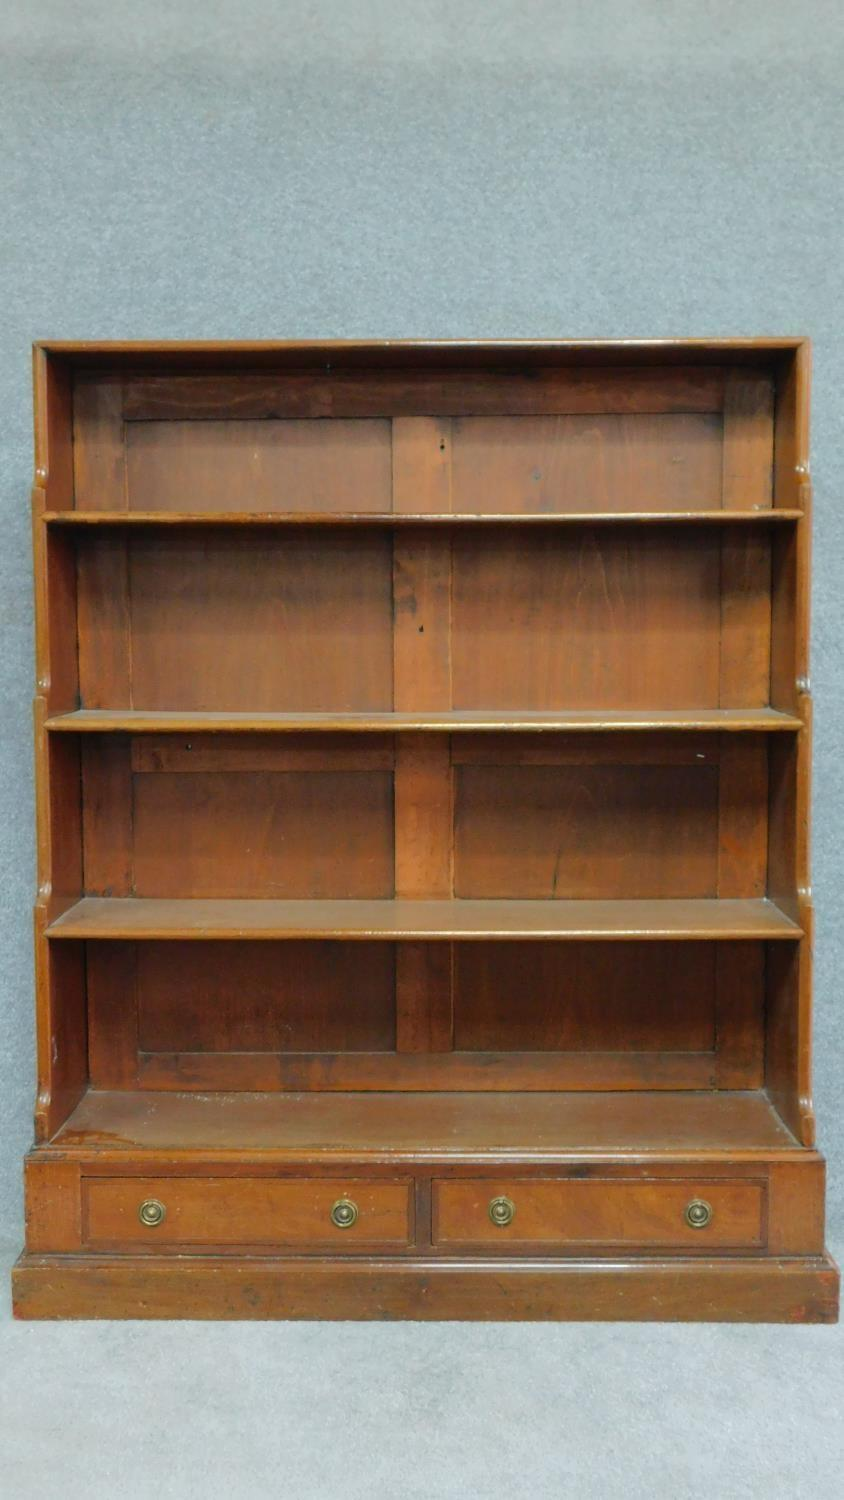 Lot 20 - A Georgian mahogany open waterfall bookshelf fitted with two base drawers. H.133 W.107 D.30cm